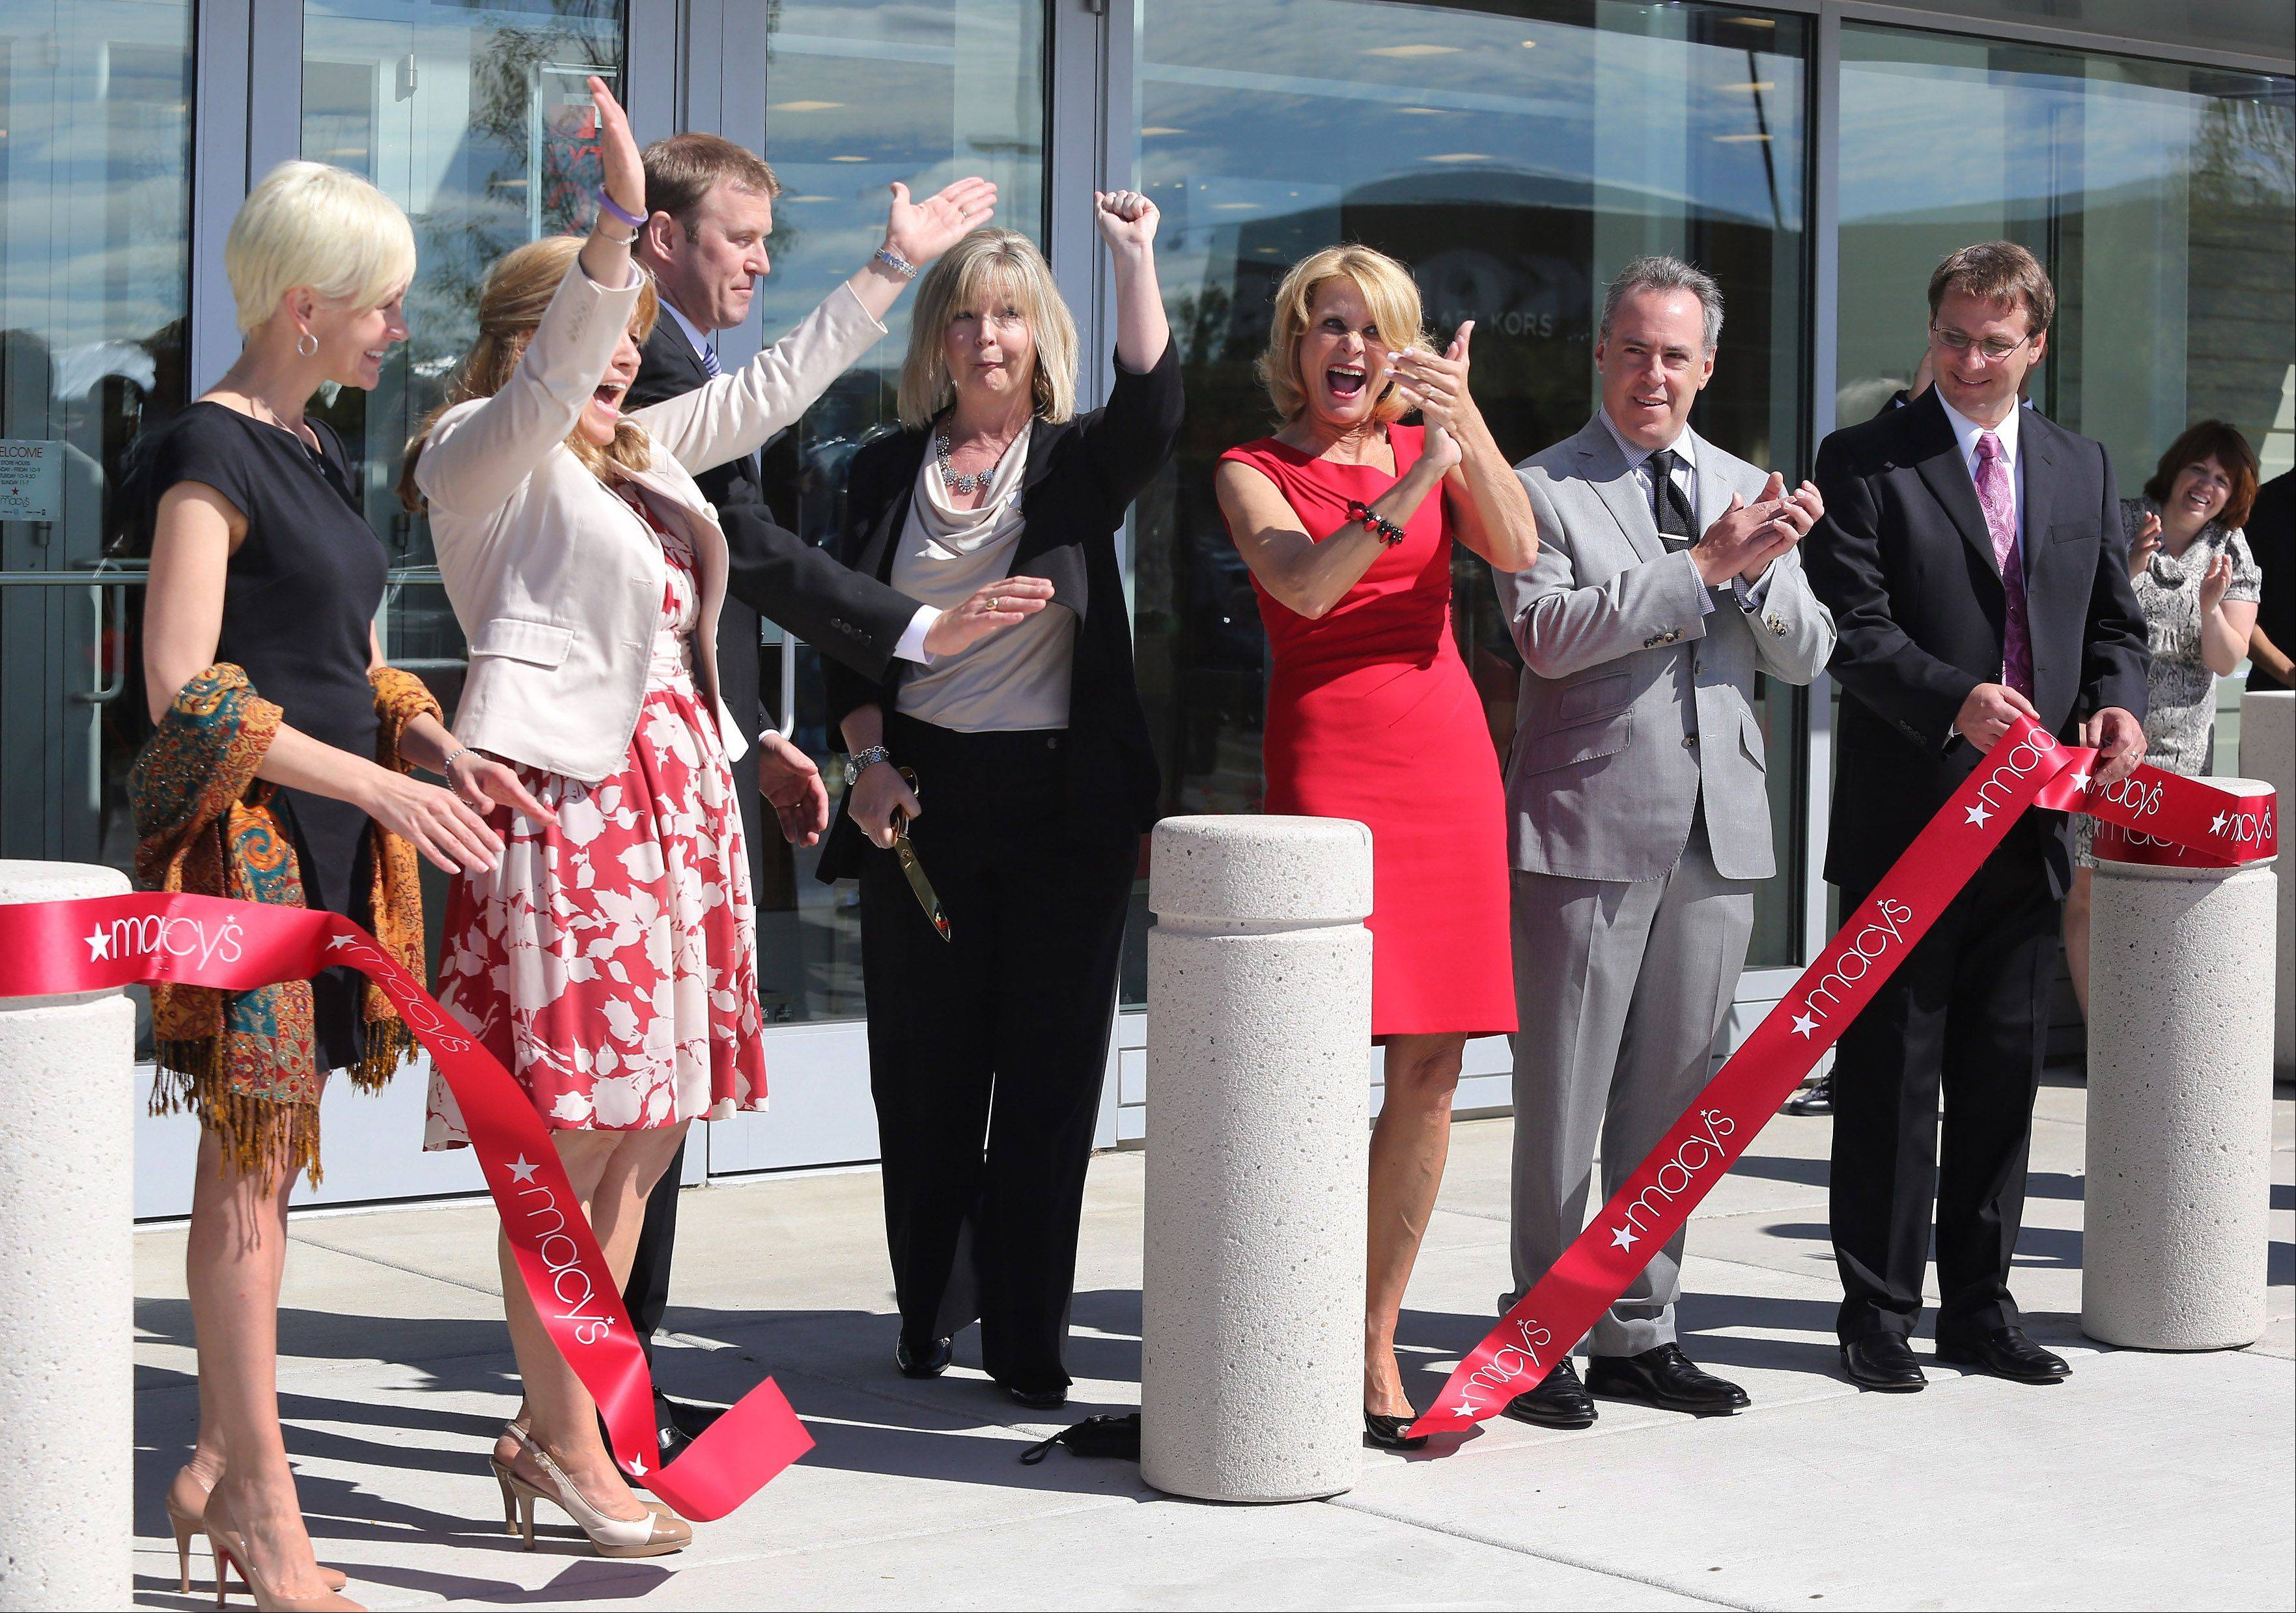 Gurnee village officials, Macy's executives and Gurnee Mills representatives celebrate during ribbon-cutting ceremony at Wednesday's grand opening of Macy's in Gurnee Mills.